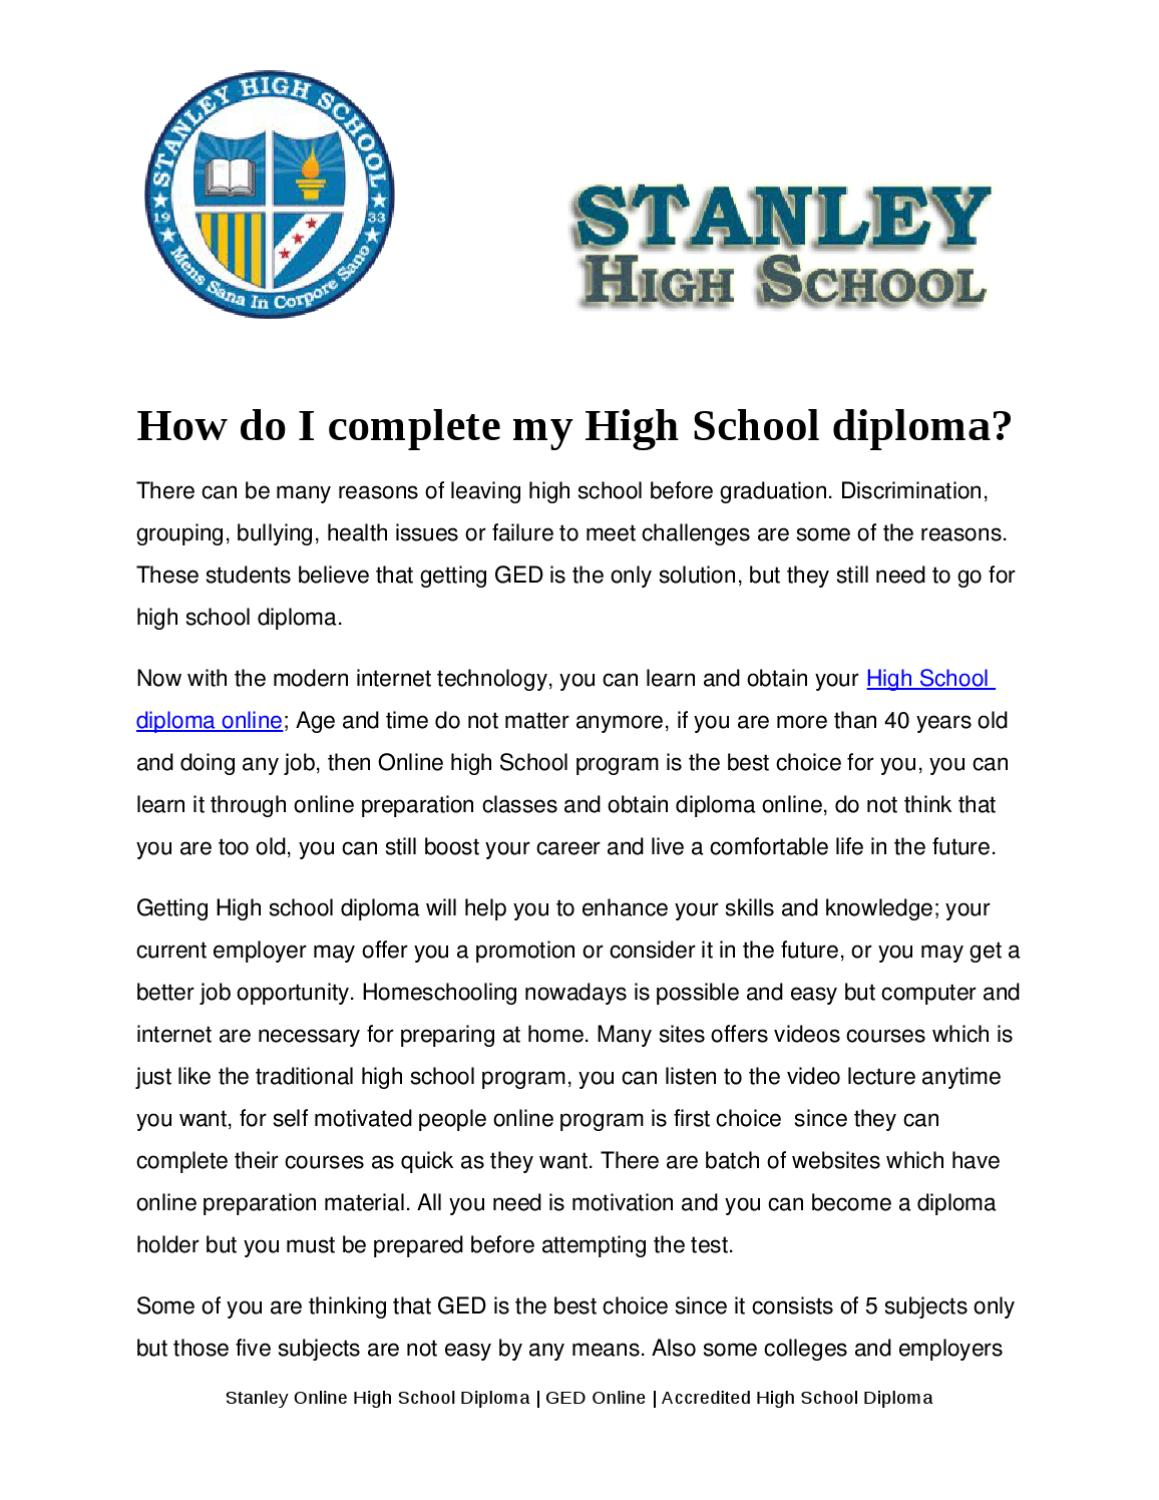 How Do I Complete My High School Diploma By Robert Stanley Issuu